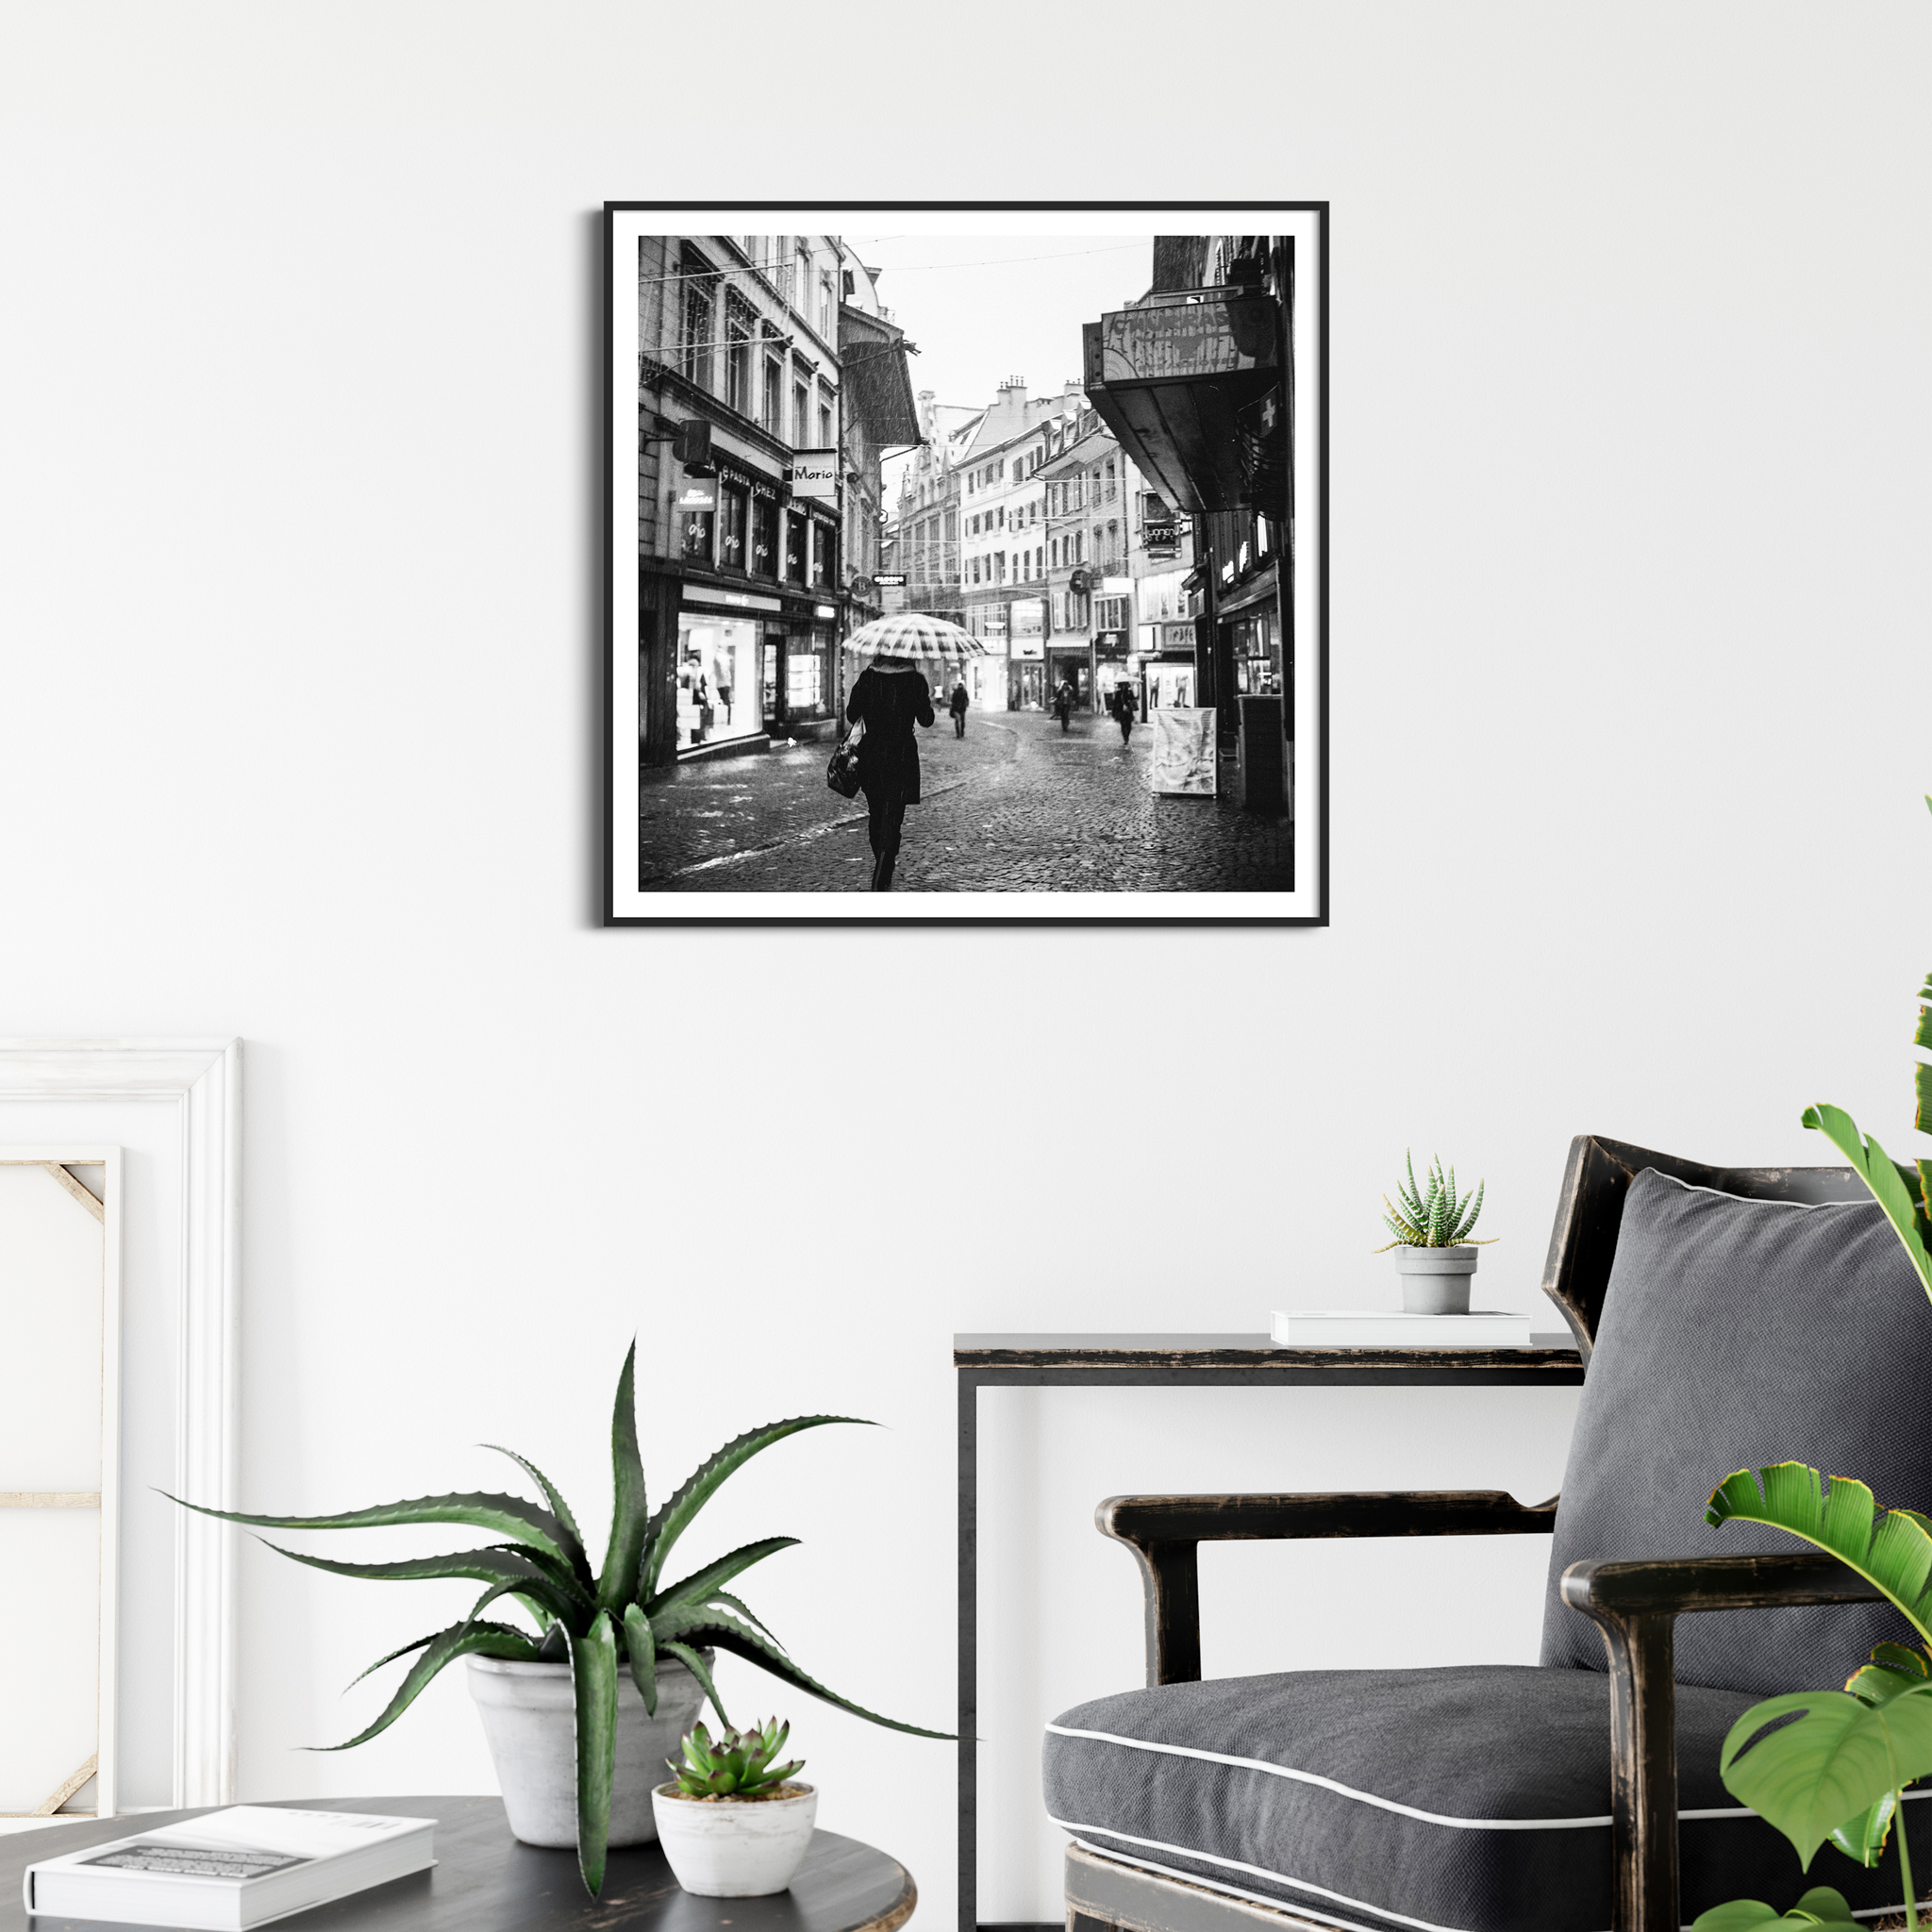 Rainy Mood In Lausanne - black and white print in black frame with border on the wall